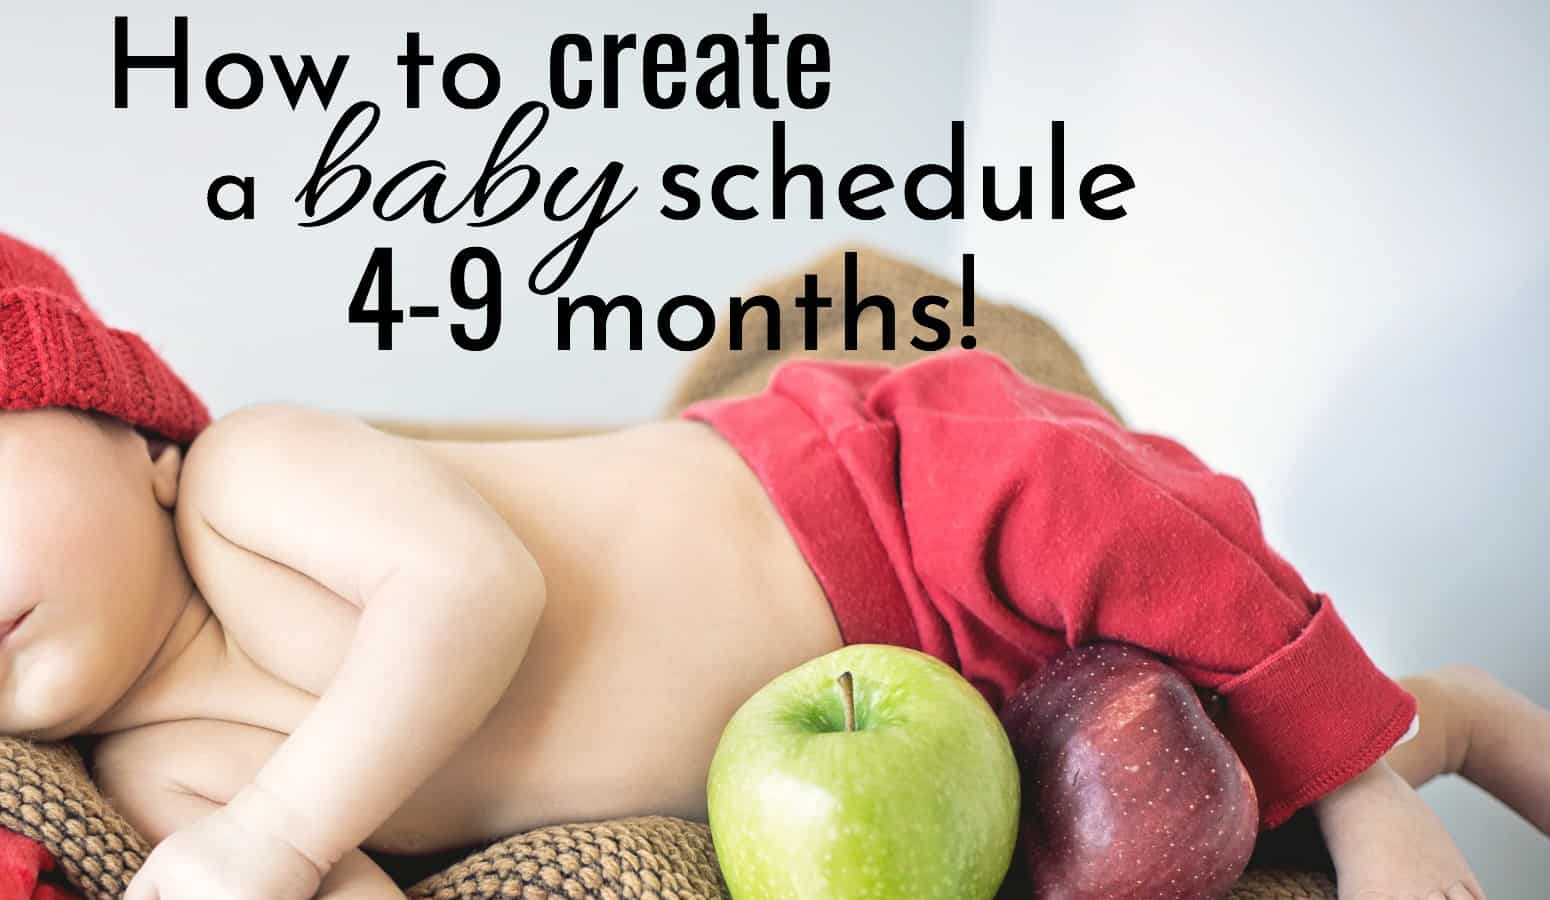 How to create a baby schedule 4-9 months.